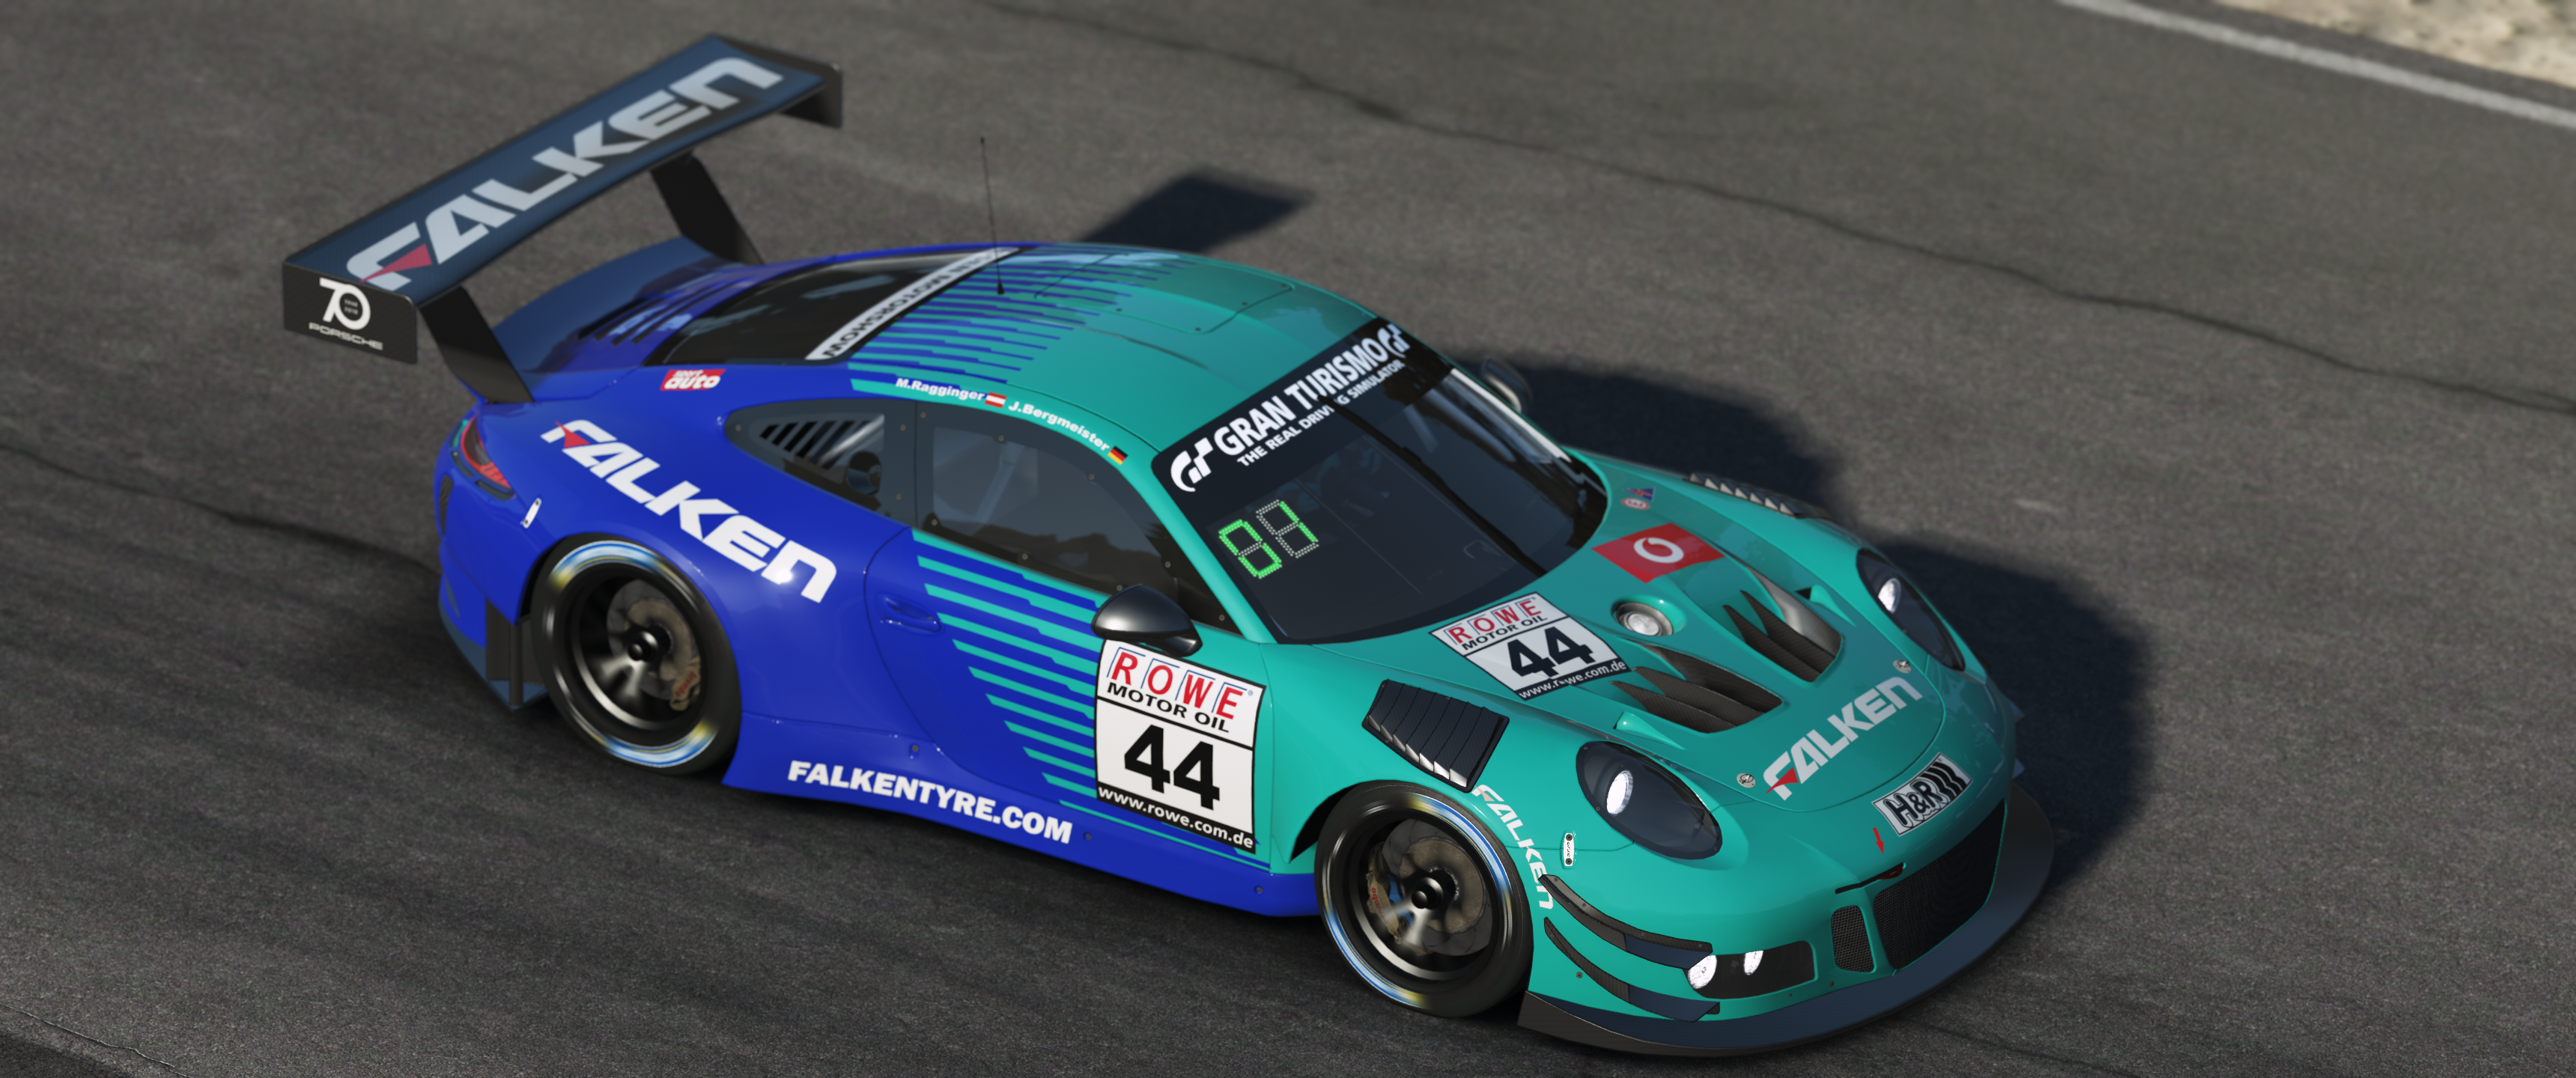 rFactor2 2019-02-25 00-09-38-12.png